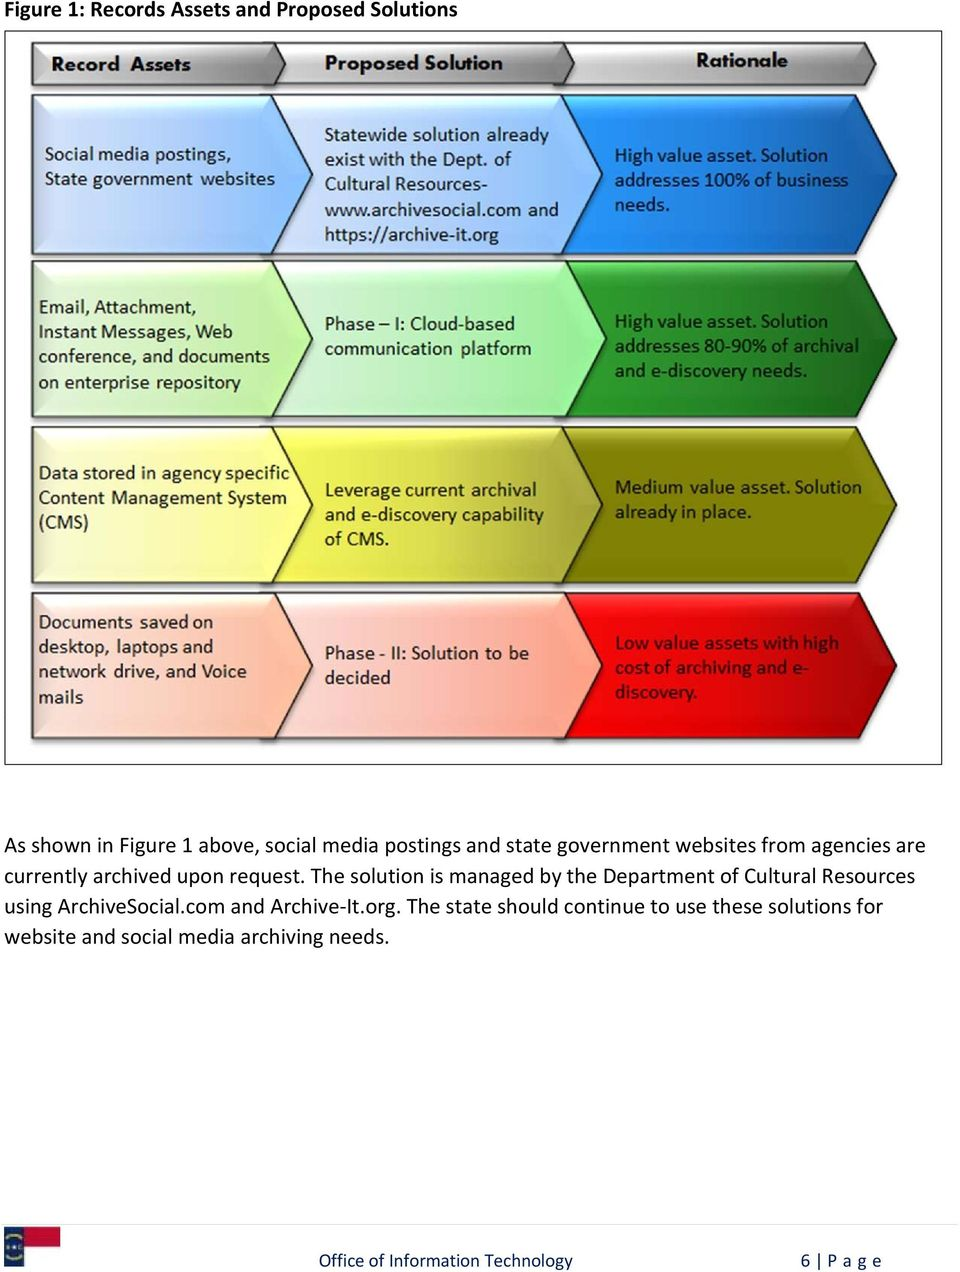 As shown in Figure 1 above, social media postings and state government websites from agencies are currently archived upon request.